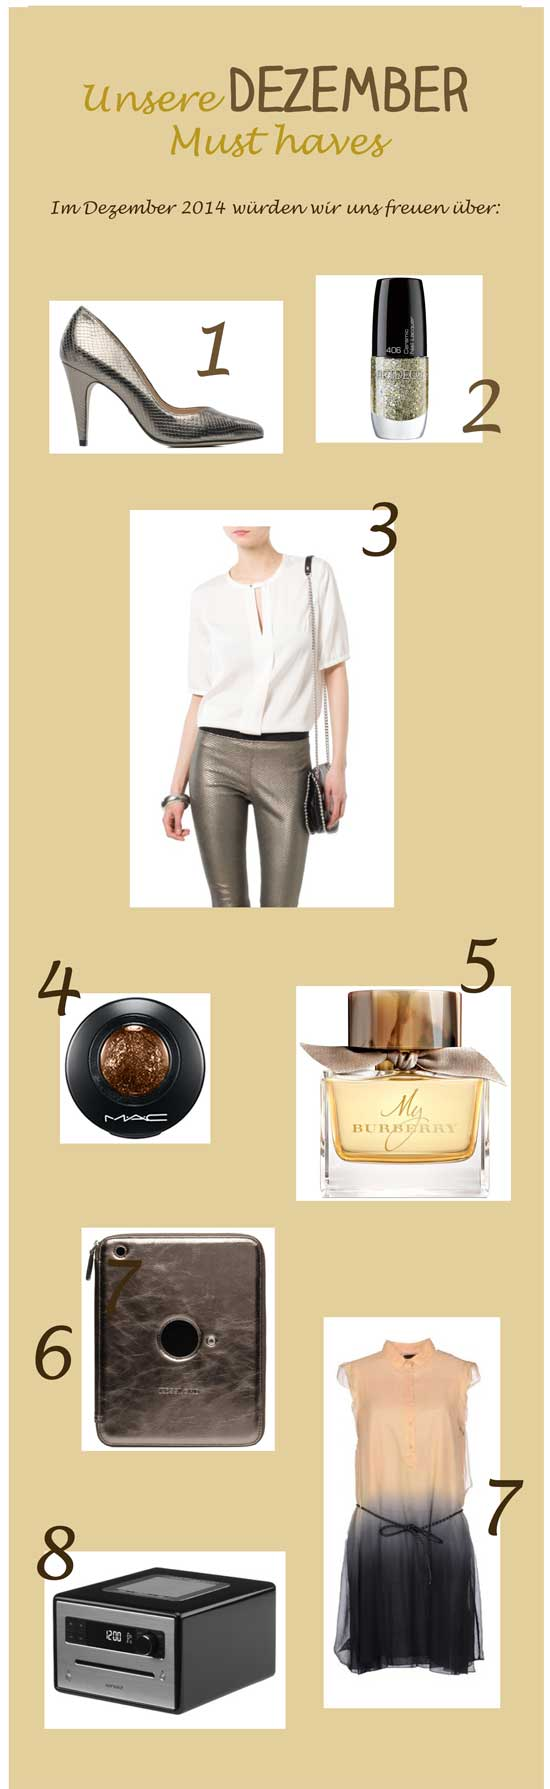 Dezember-Must-haves-2014